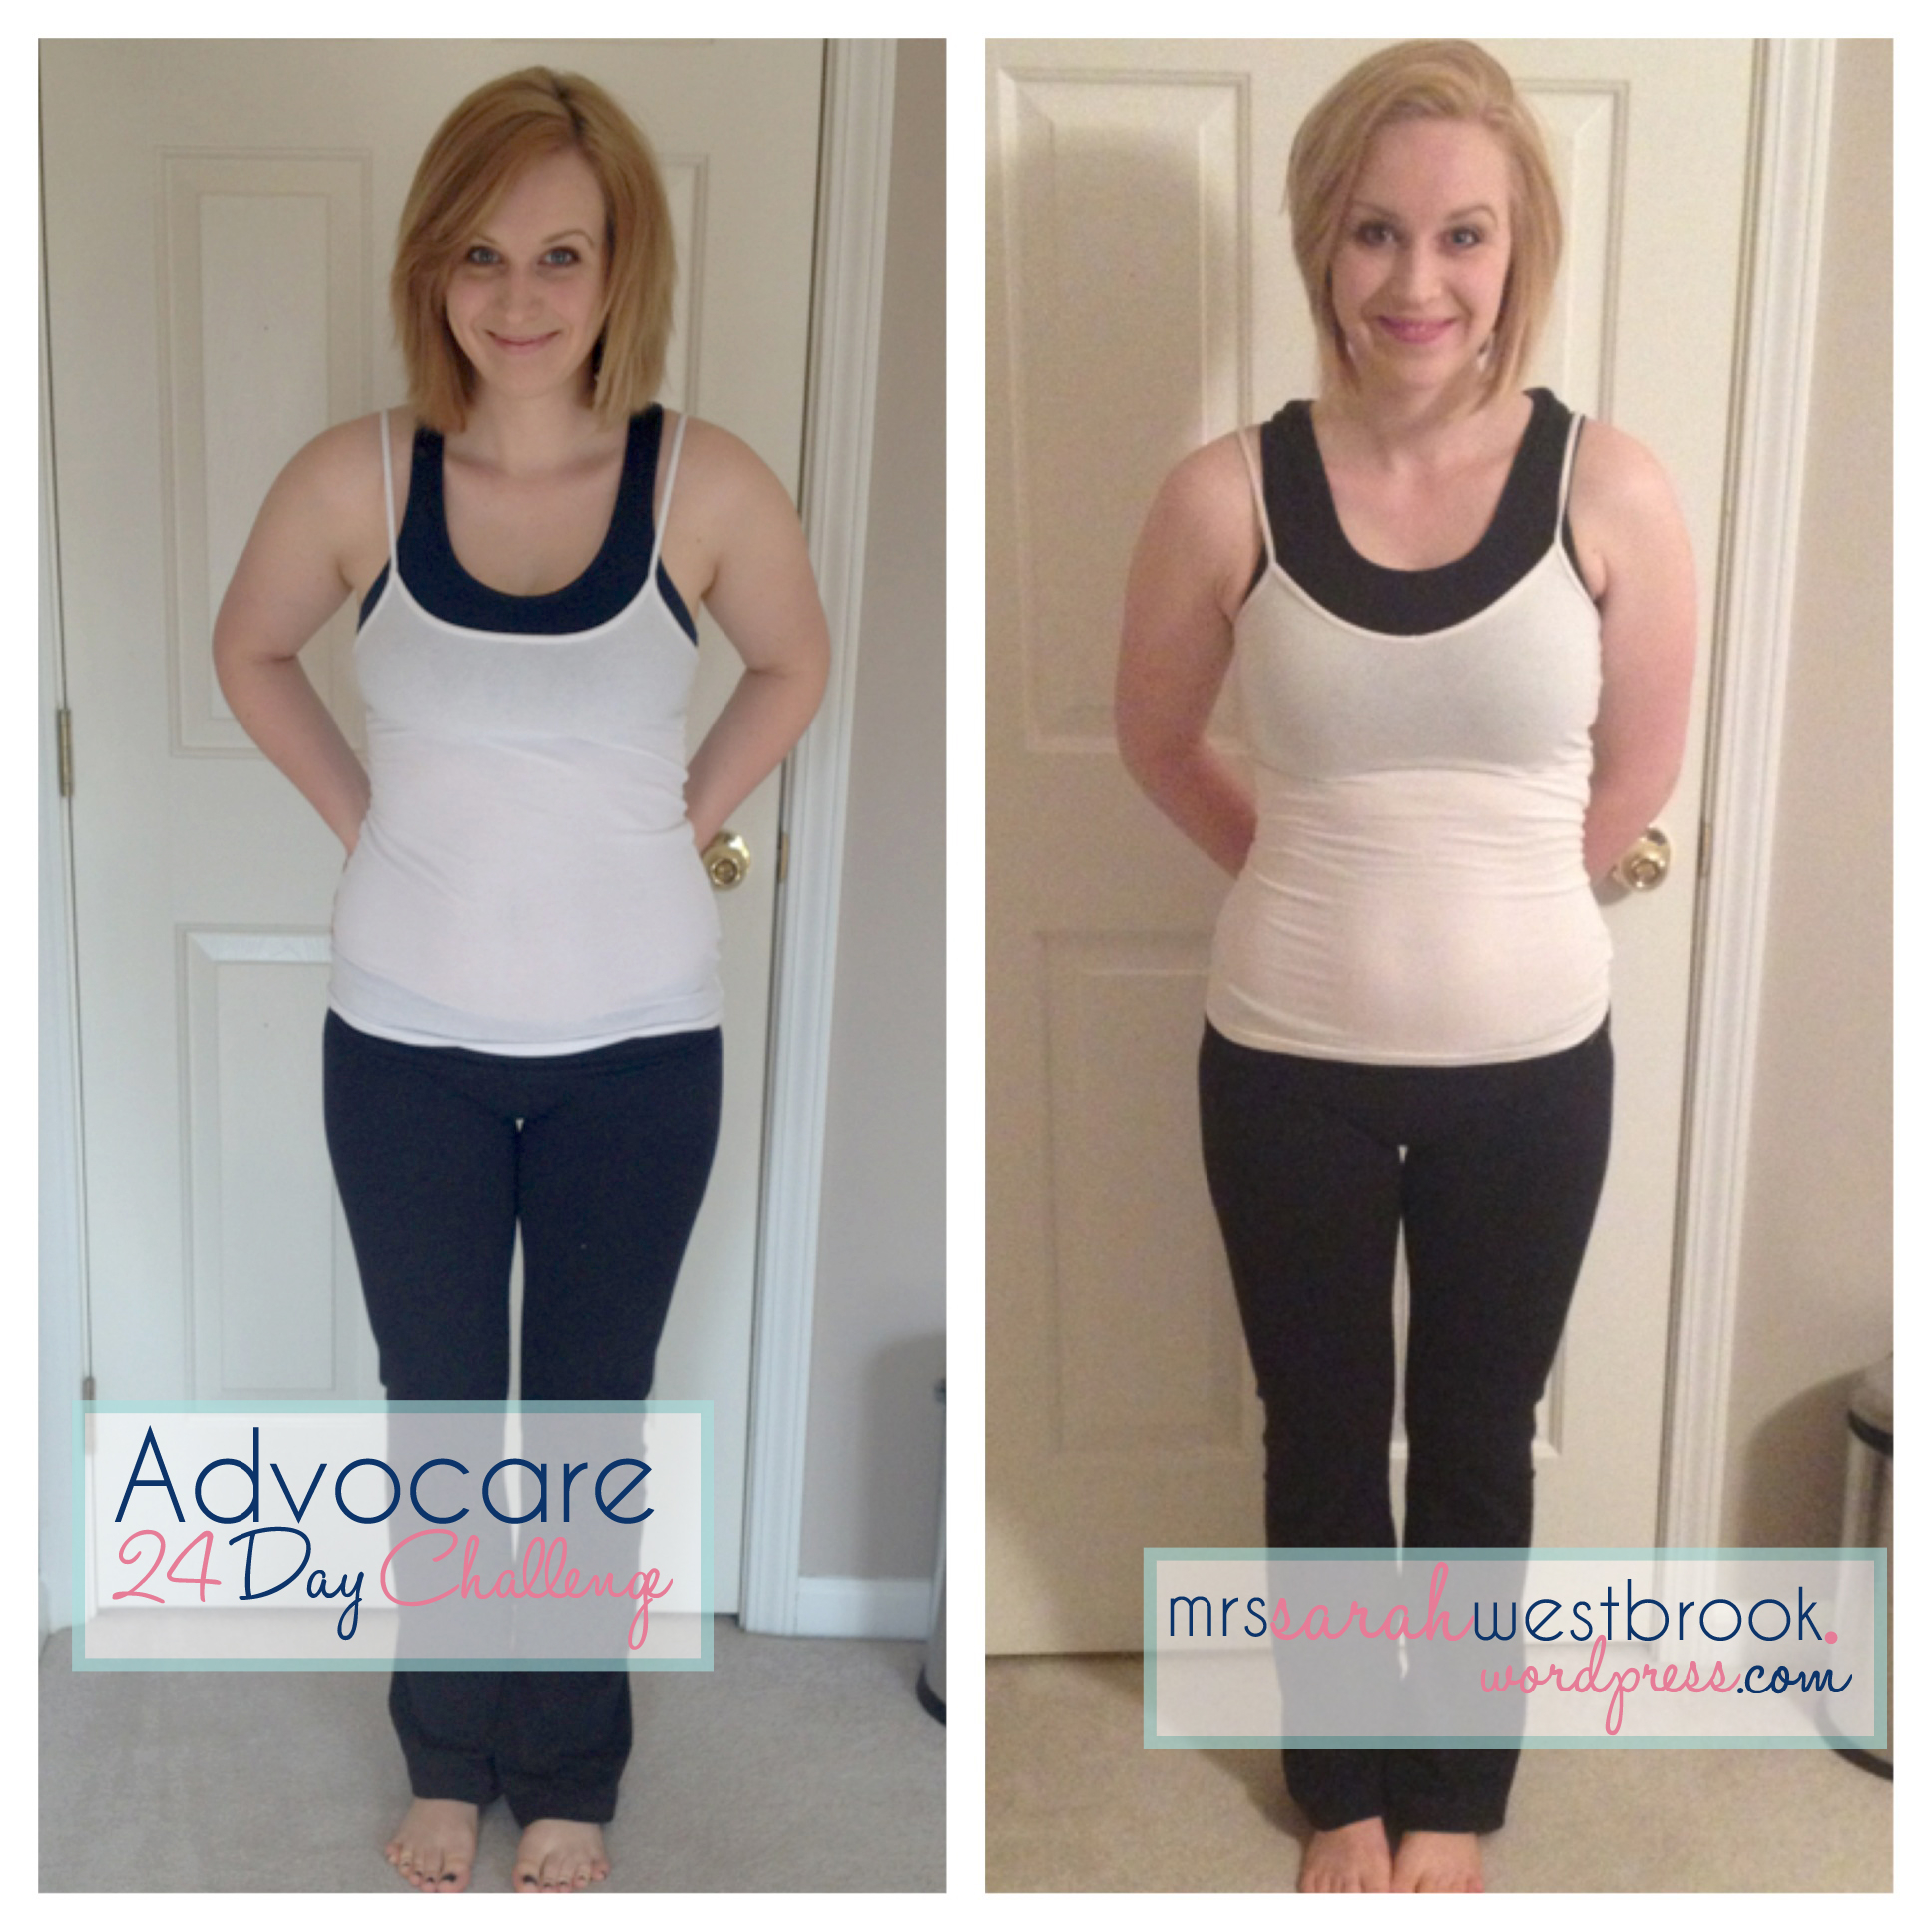 Advocare 24 Day Challenge Before And After Pictures Inside Advocare 24 Day Challenge Editable